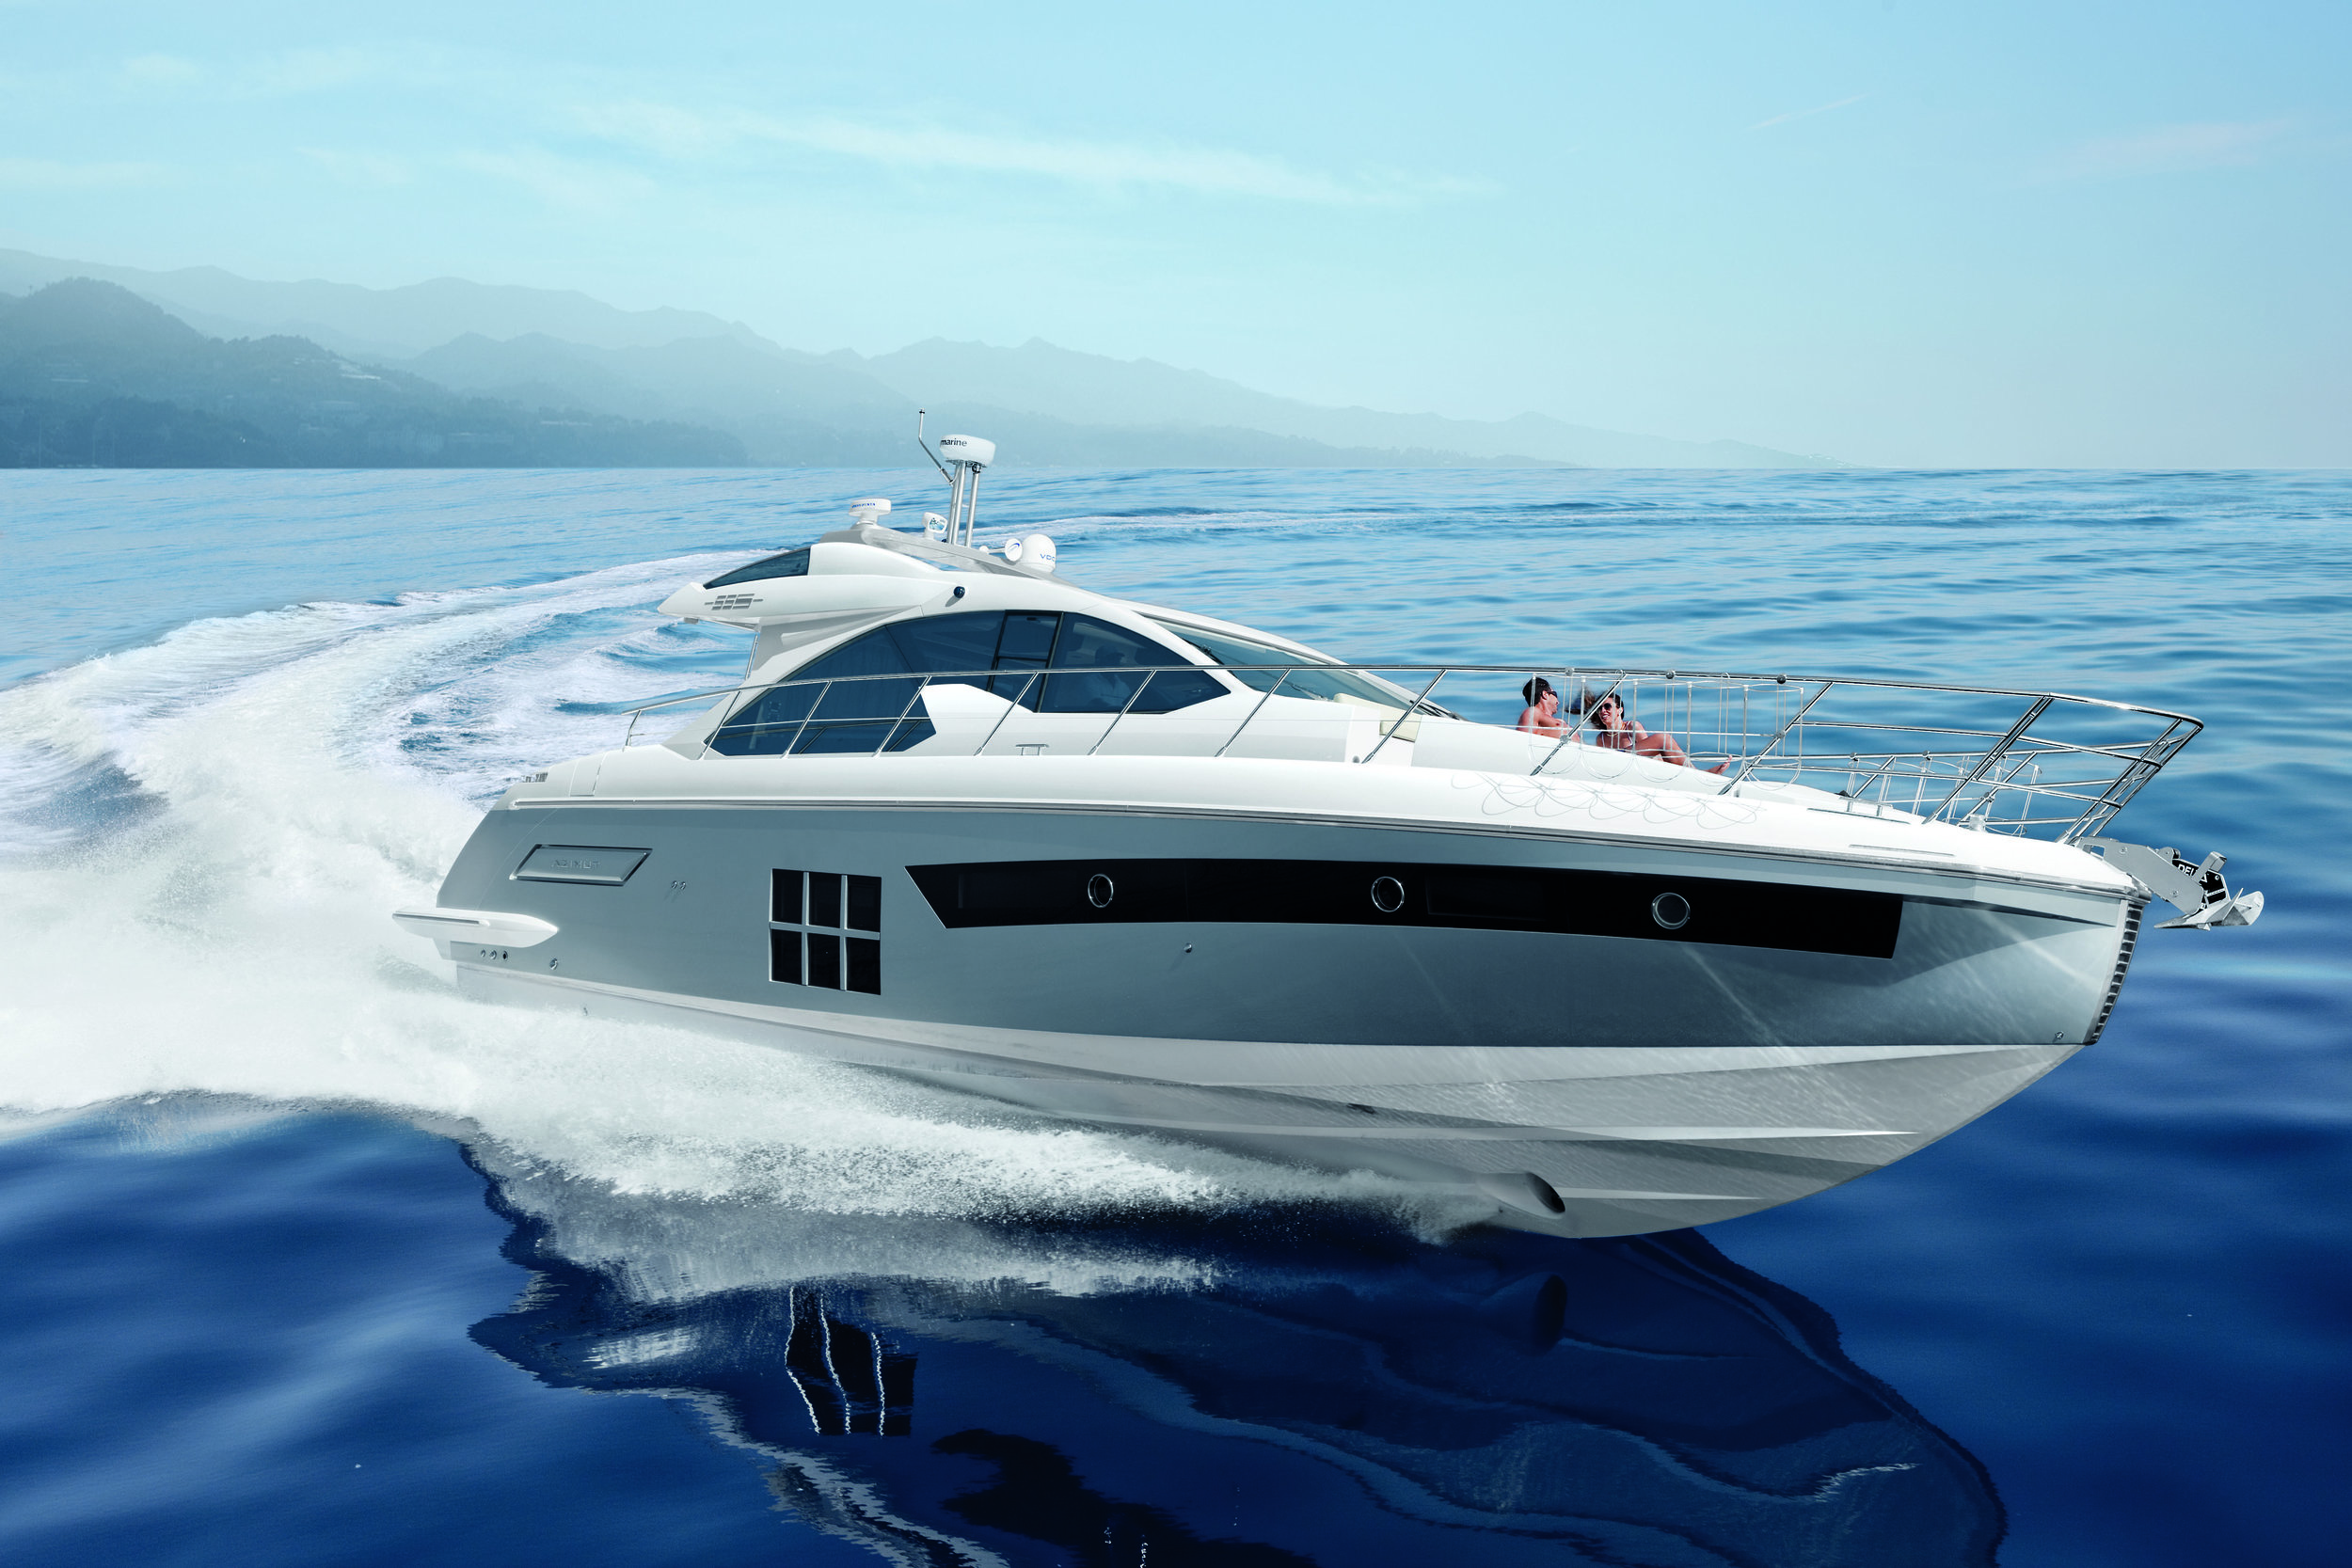 55 ft Azimut | From $2200 | 13 guest max